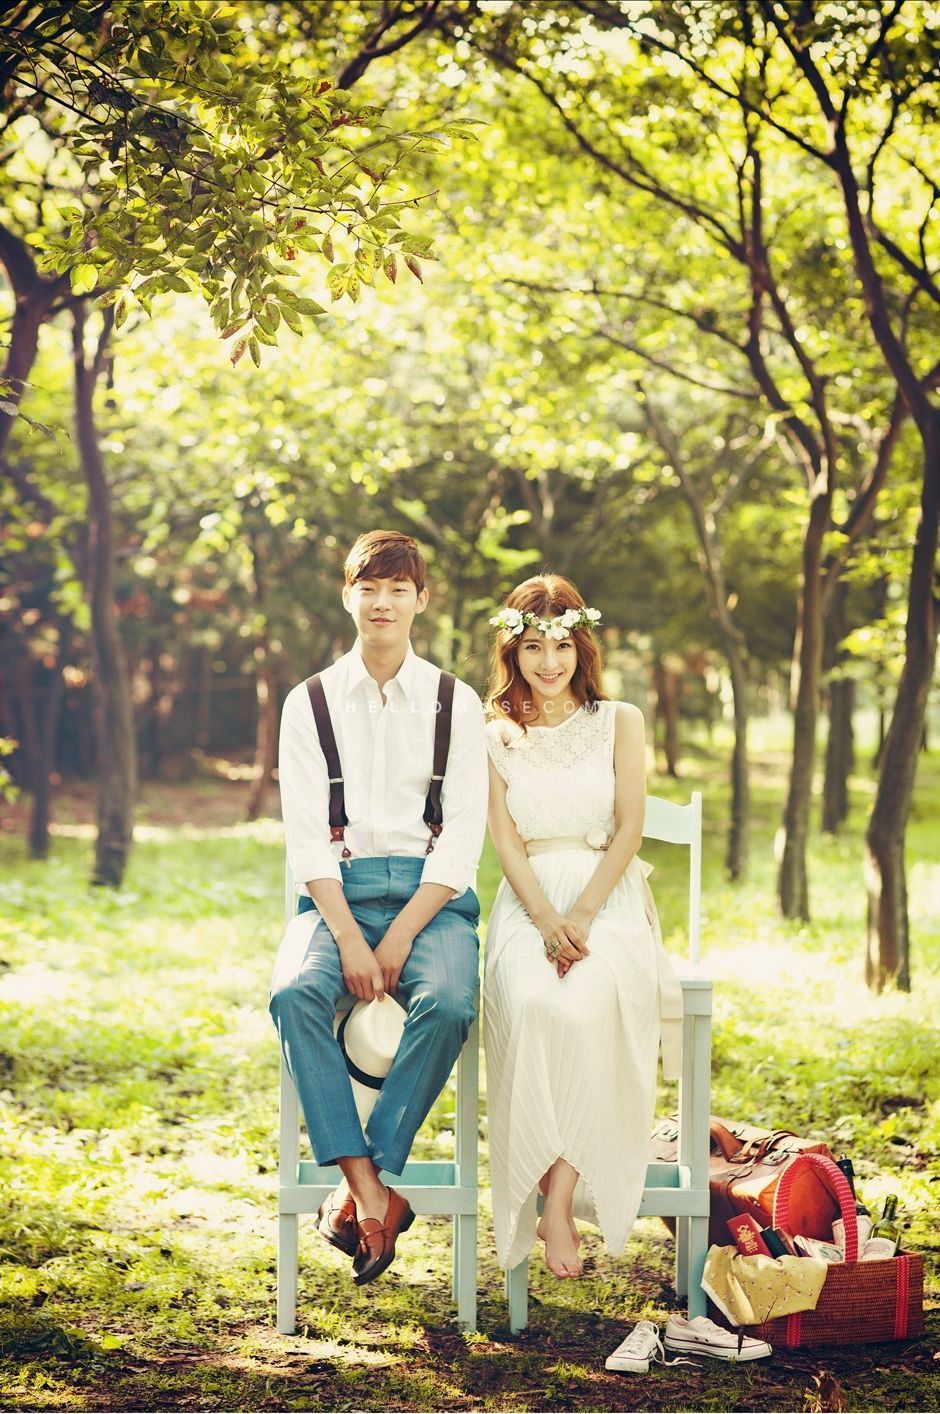 Pre Wedding Photo Shoot In Korea With Cherry Blossom